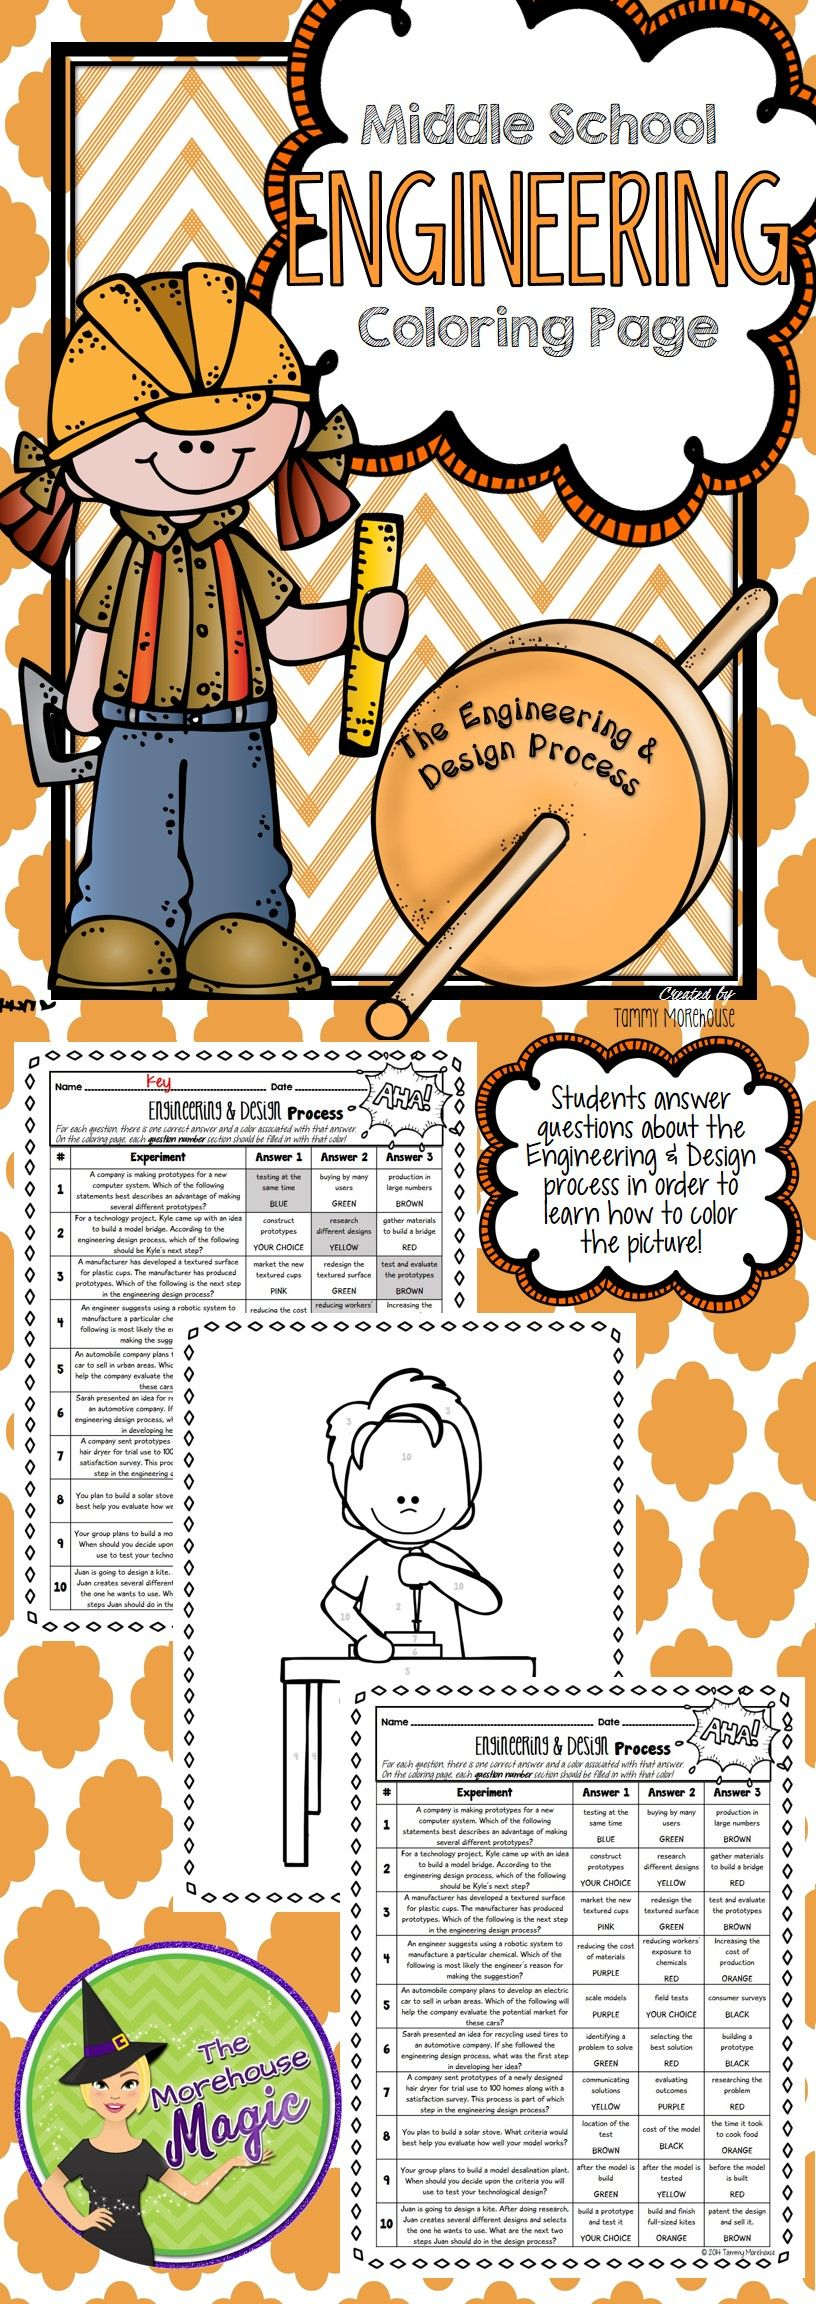 Fun coloring activities for middle school - The Engineering Design Process Fun Coloring Activity